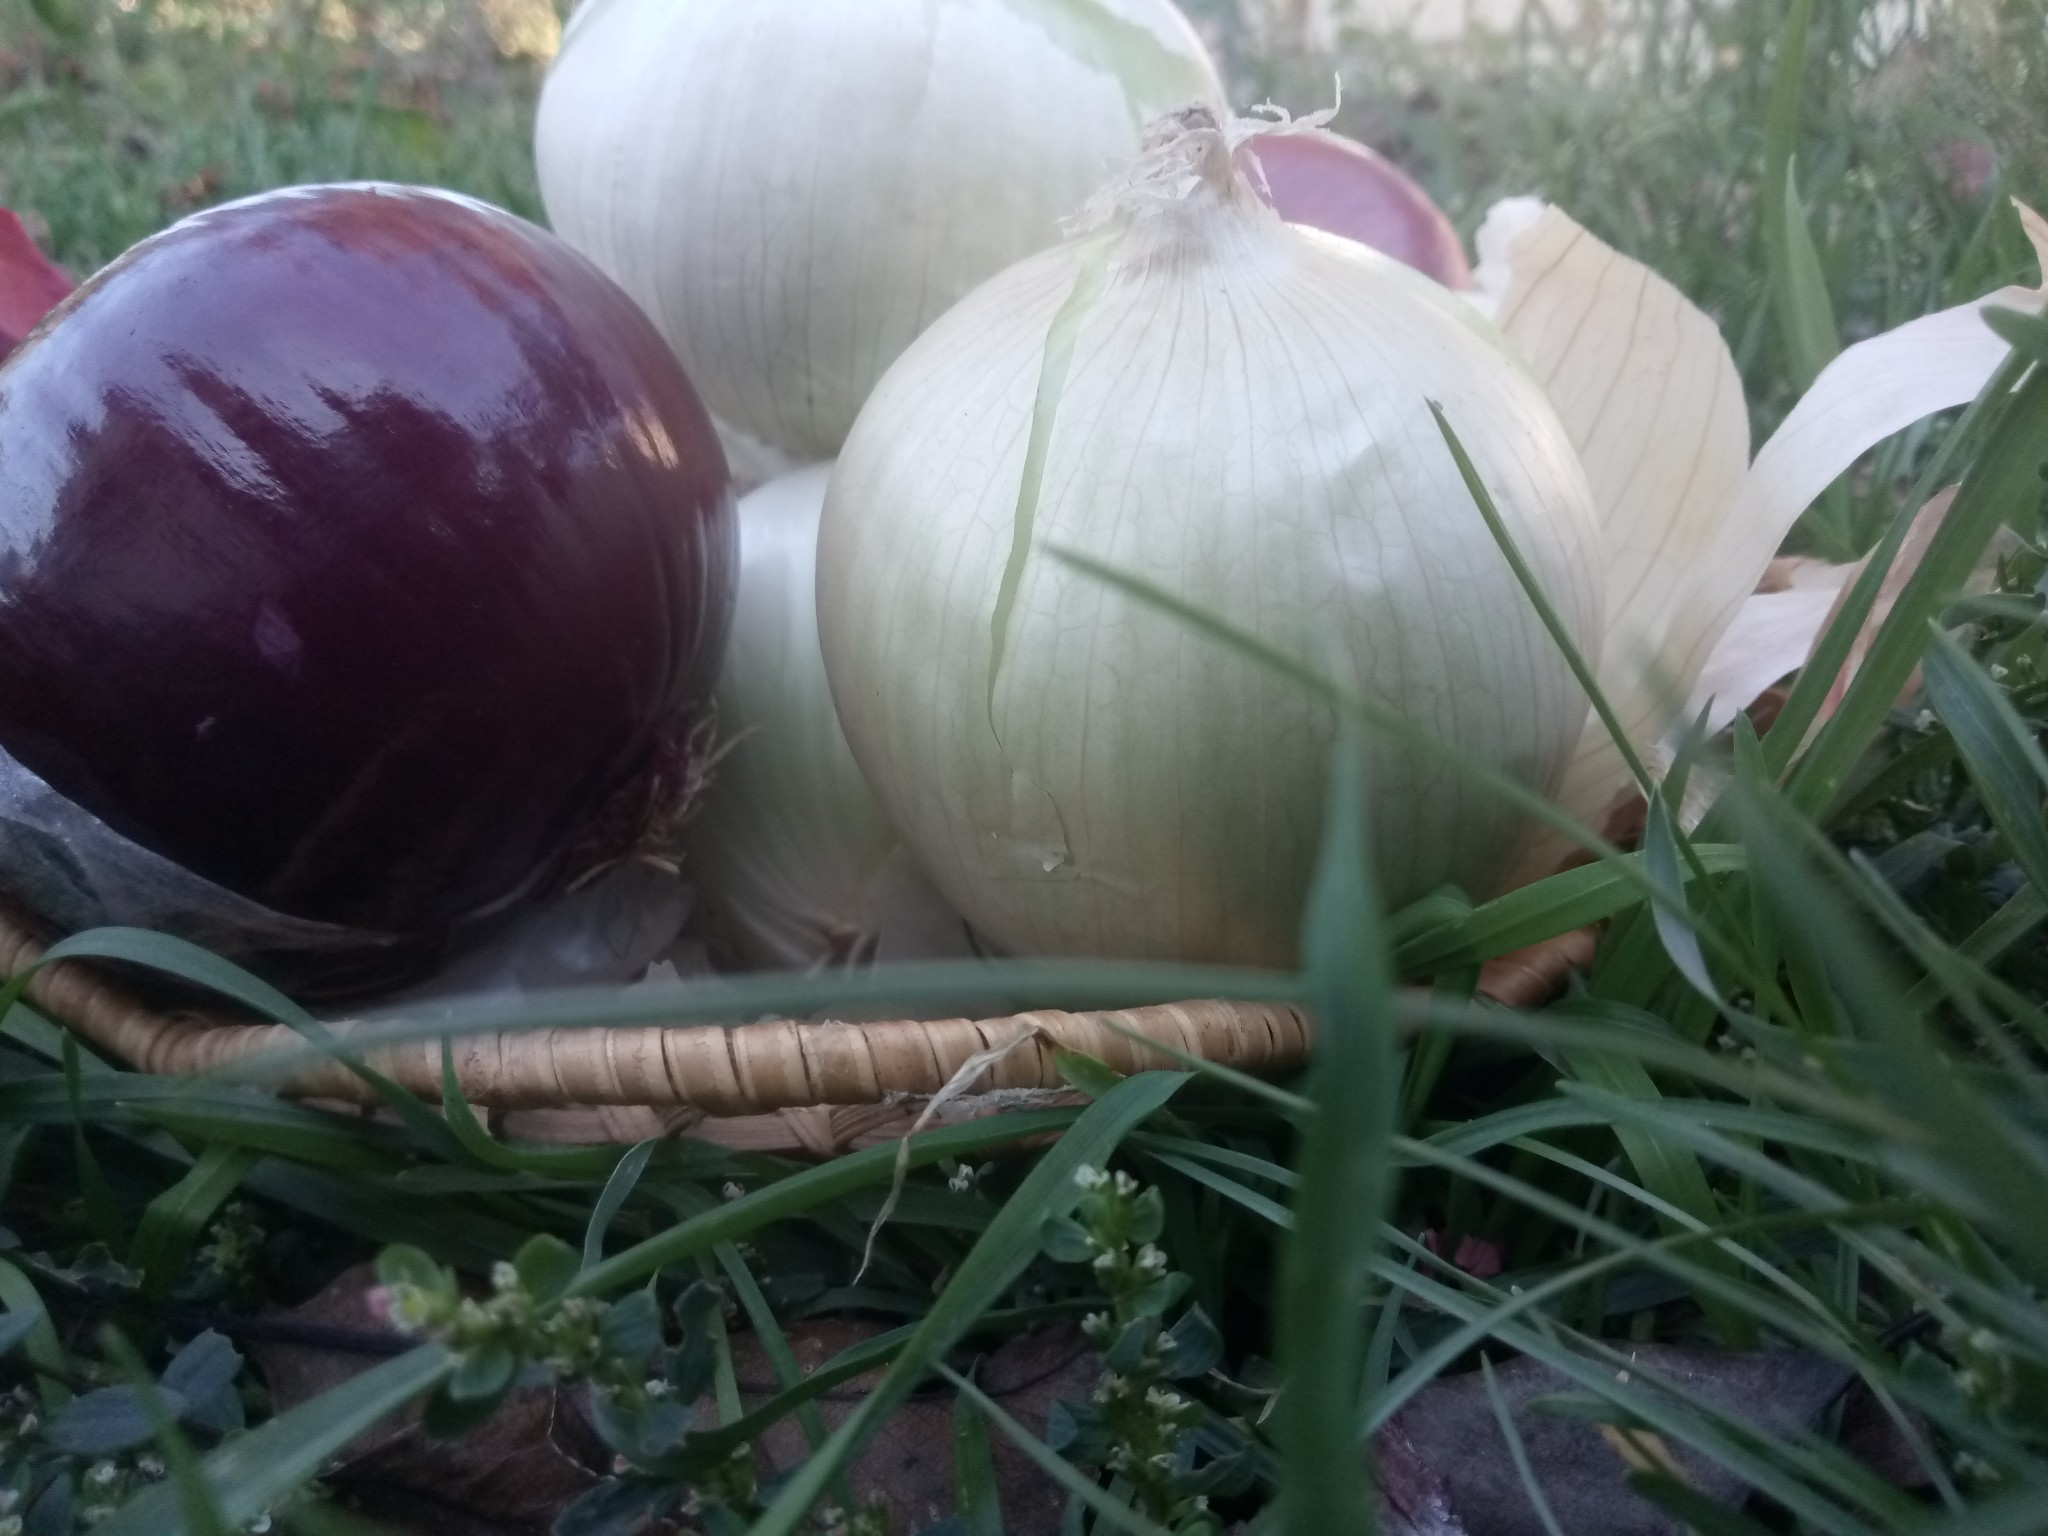 Red and white onion photo